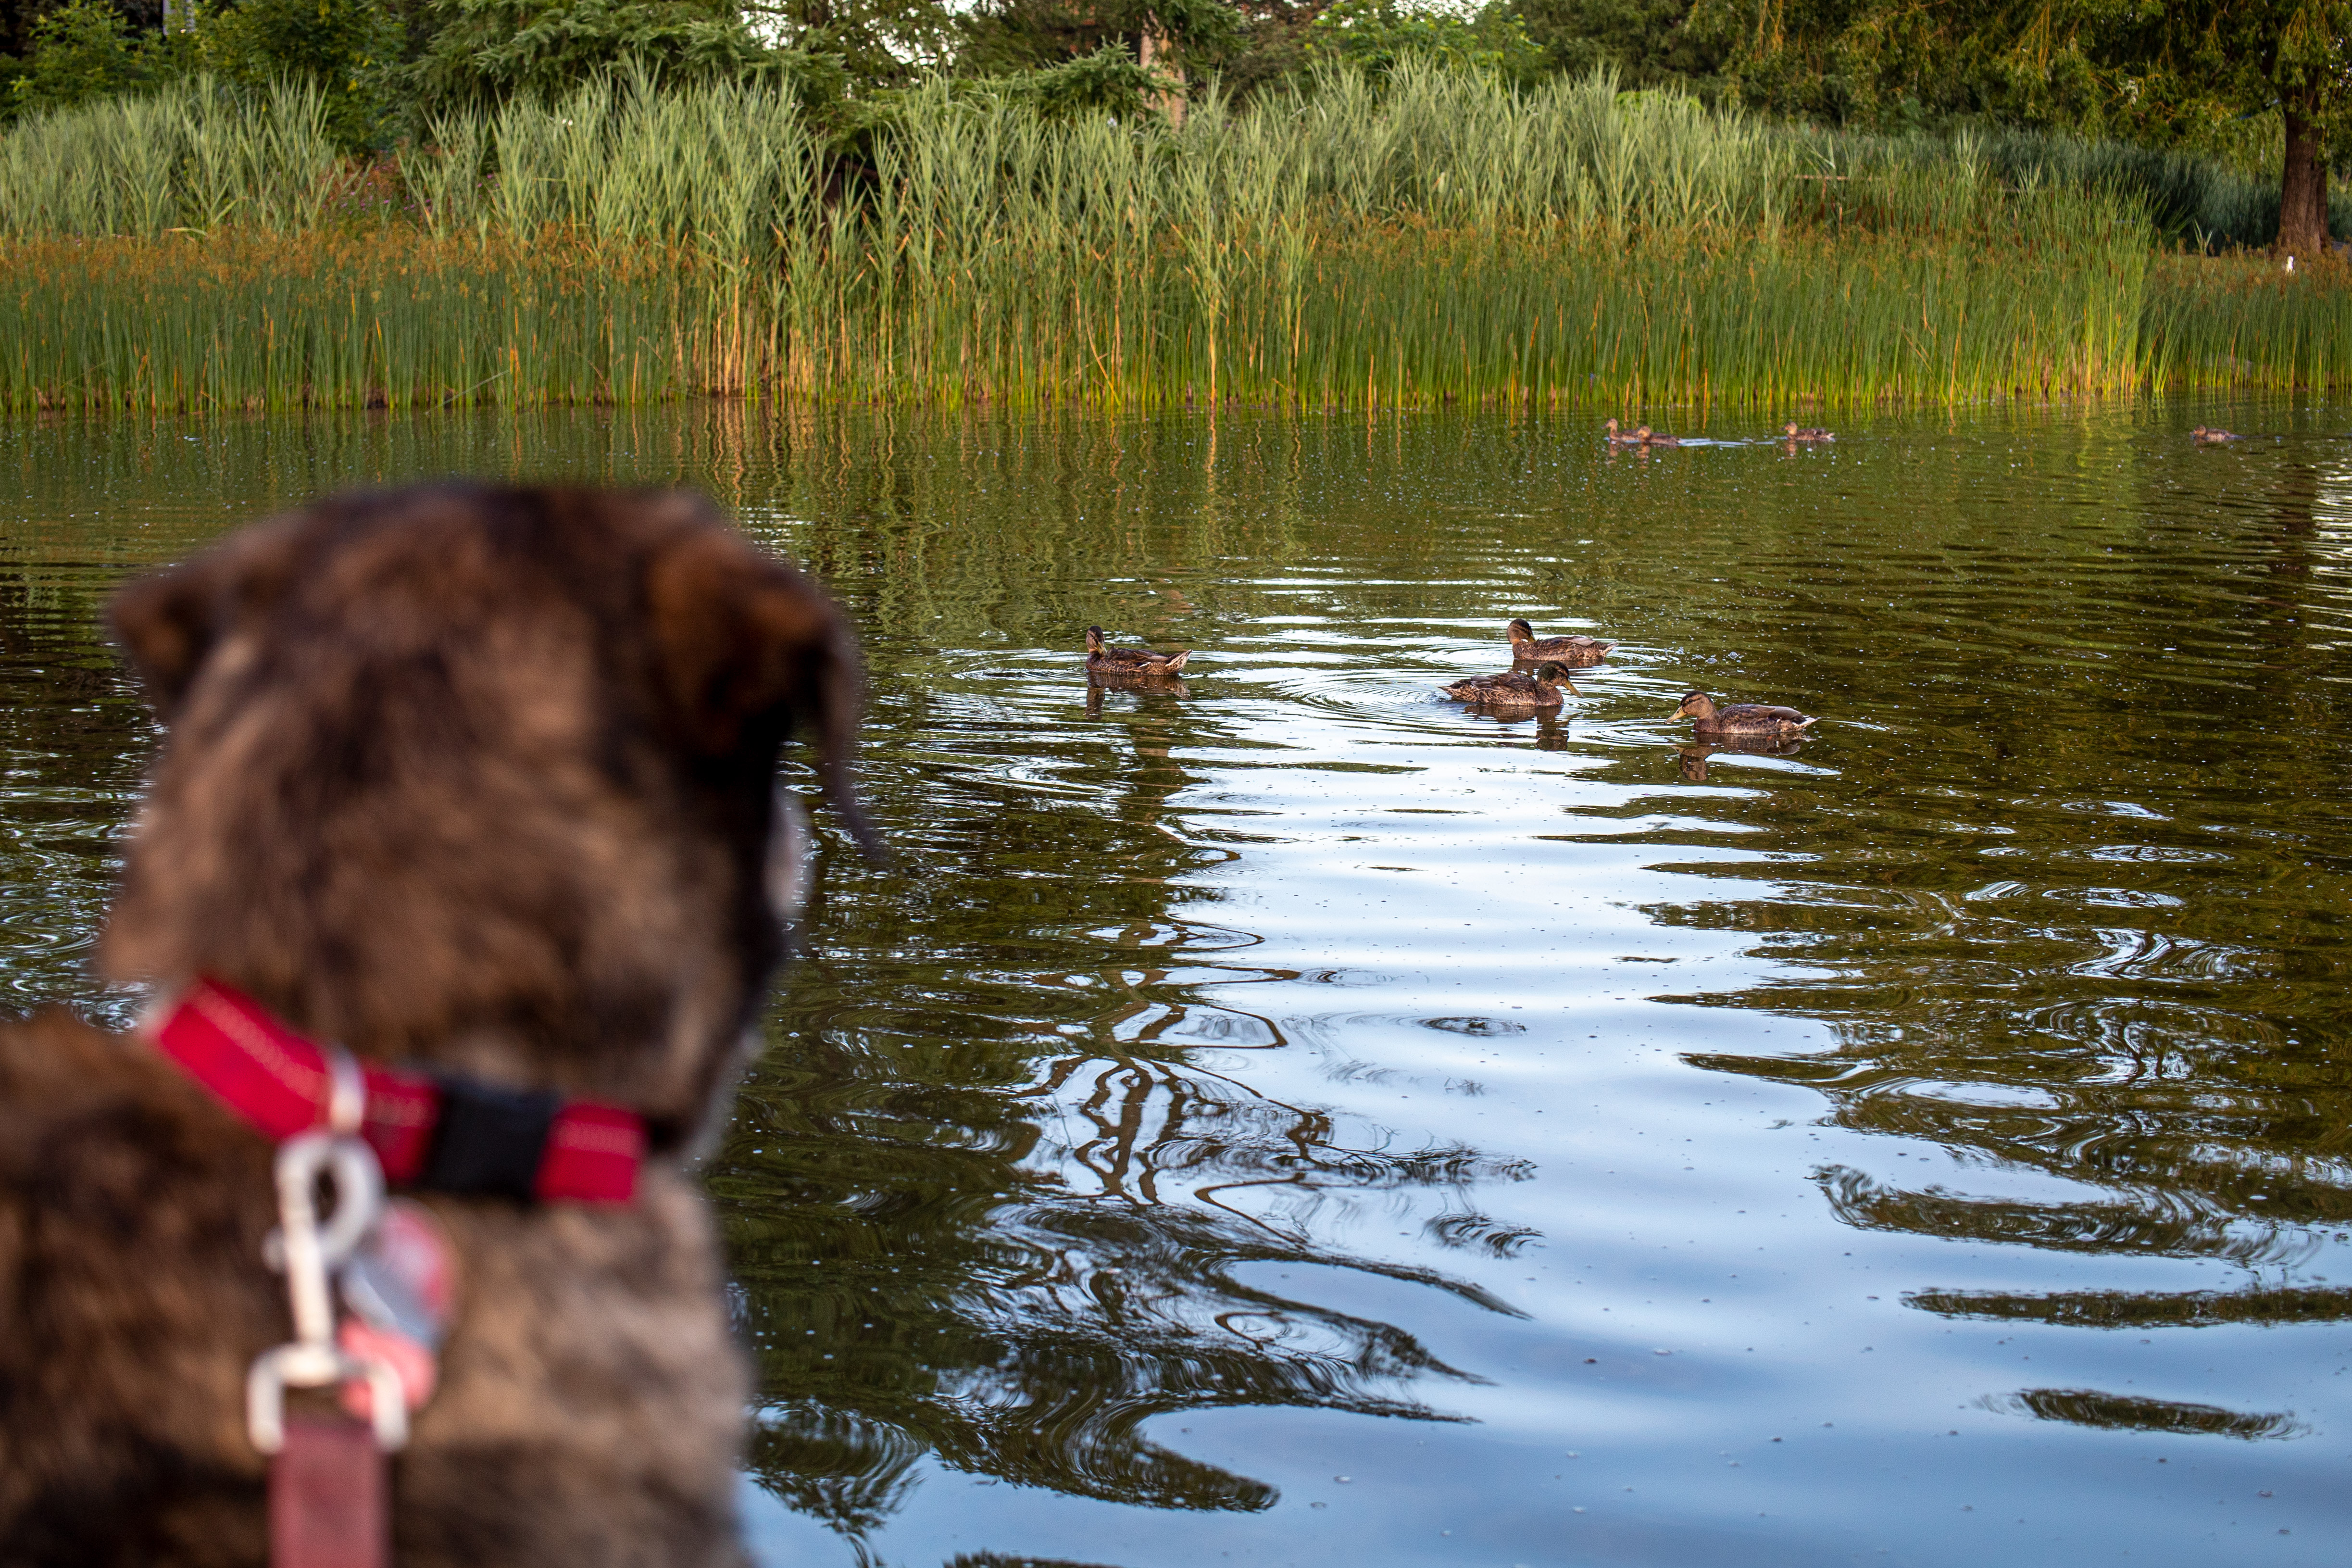 Dog with red leash and collar (out of focus) is looking at ducks in the background (in focus)